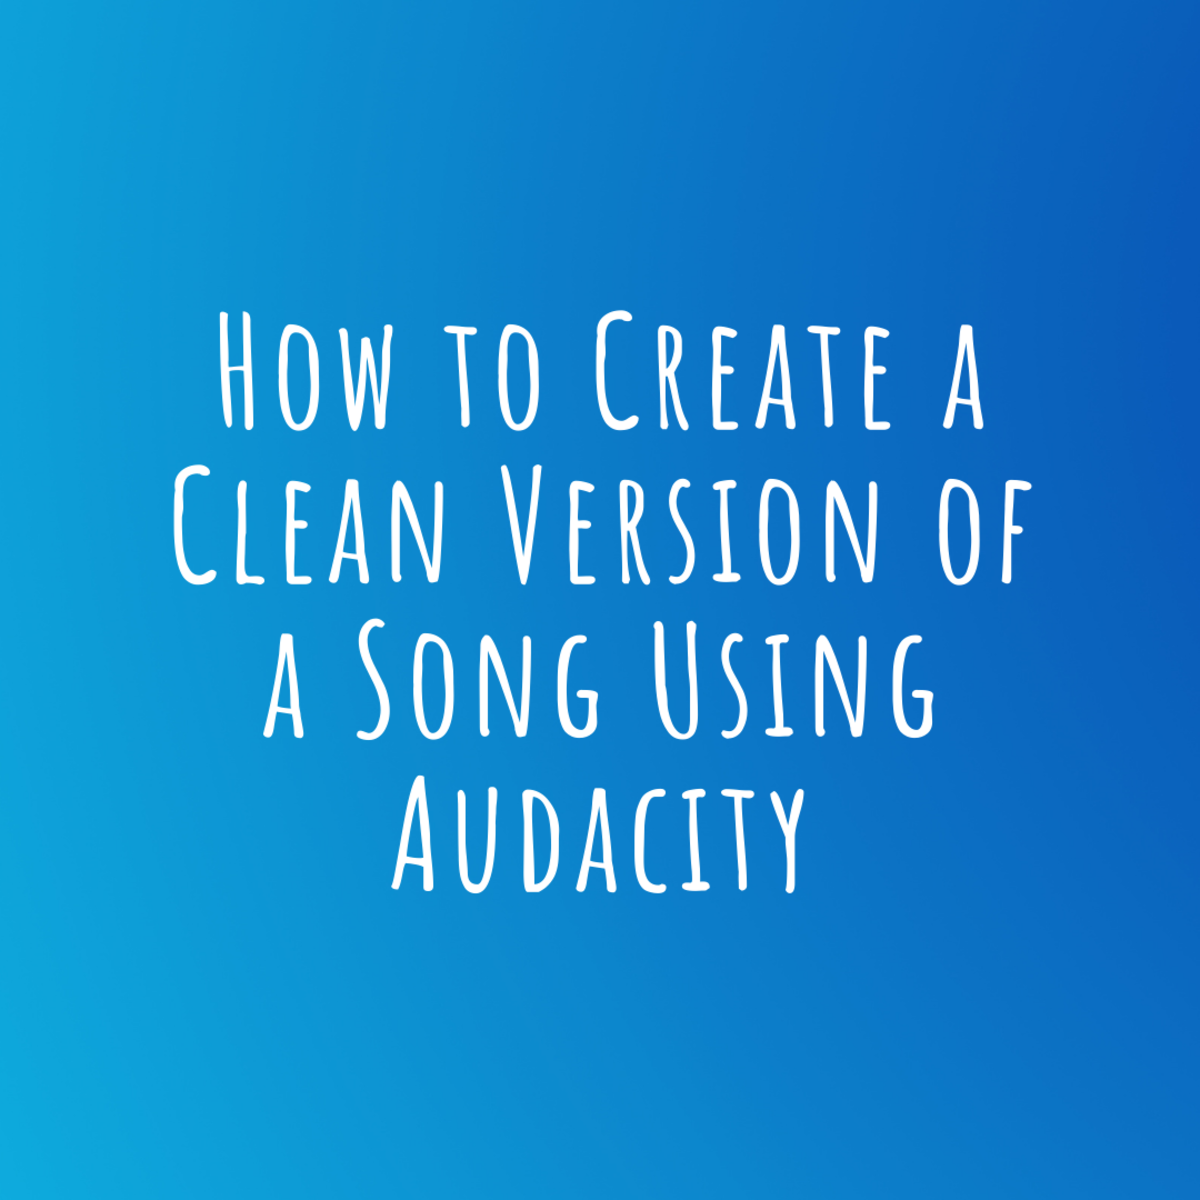 Use Audacity to create a clean version of a song for free